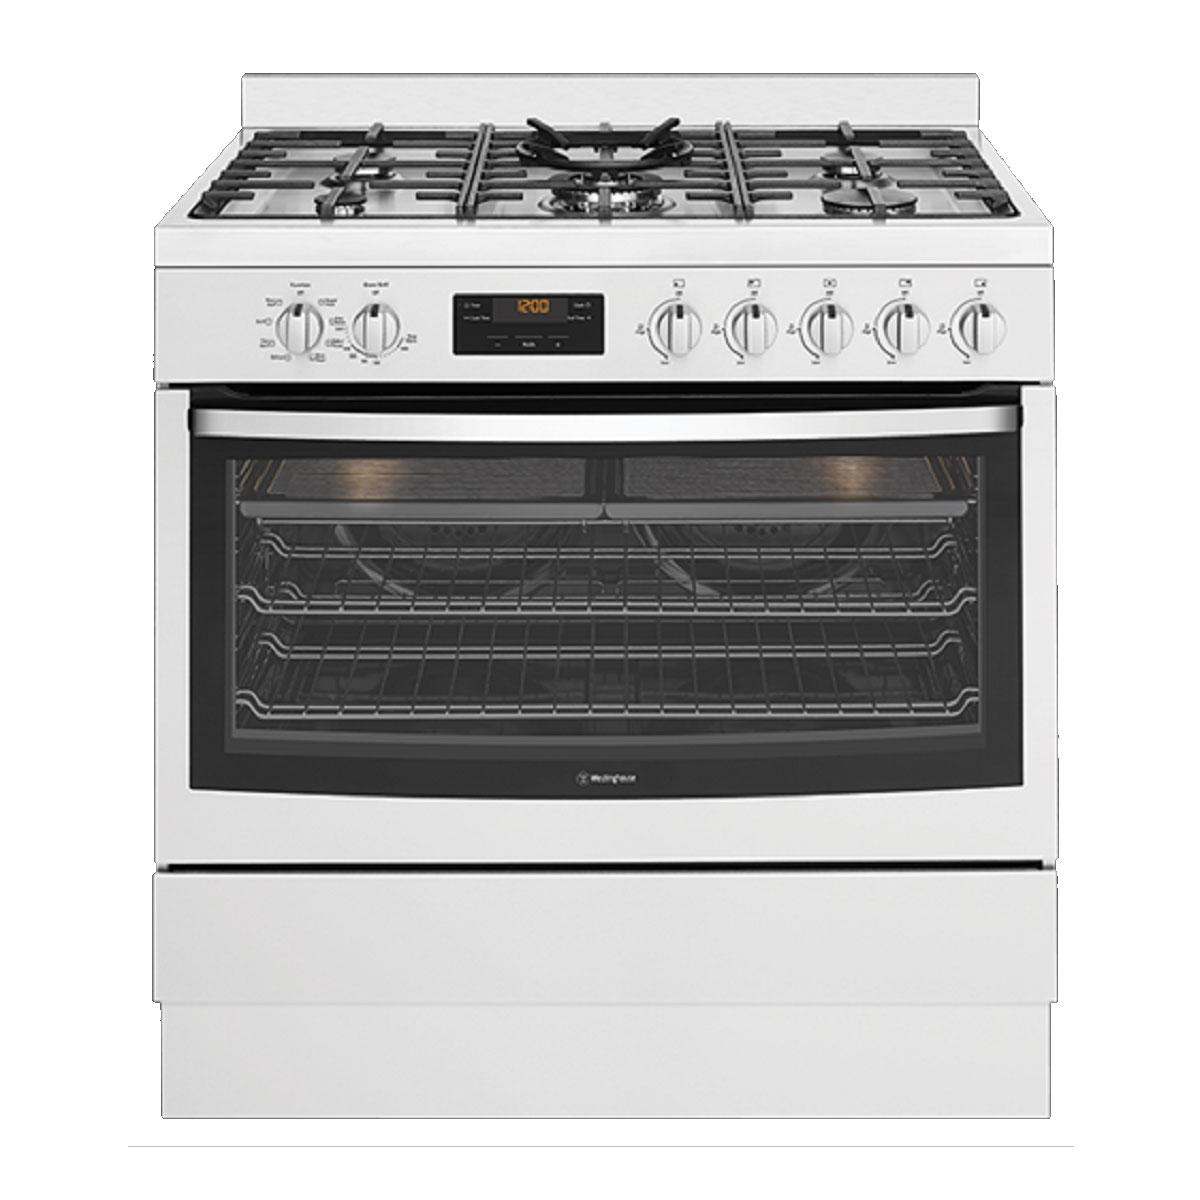 Westinghouse WFE914SB Freestanding Dual Fuel Oven/Stove